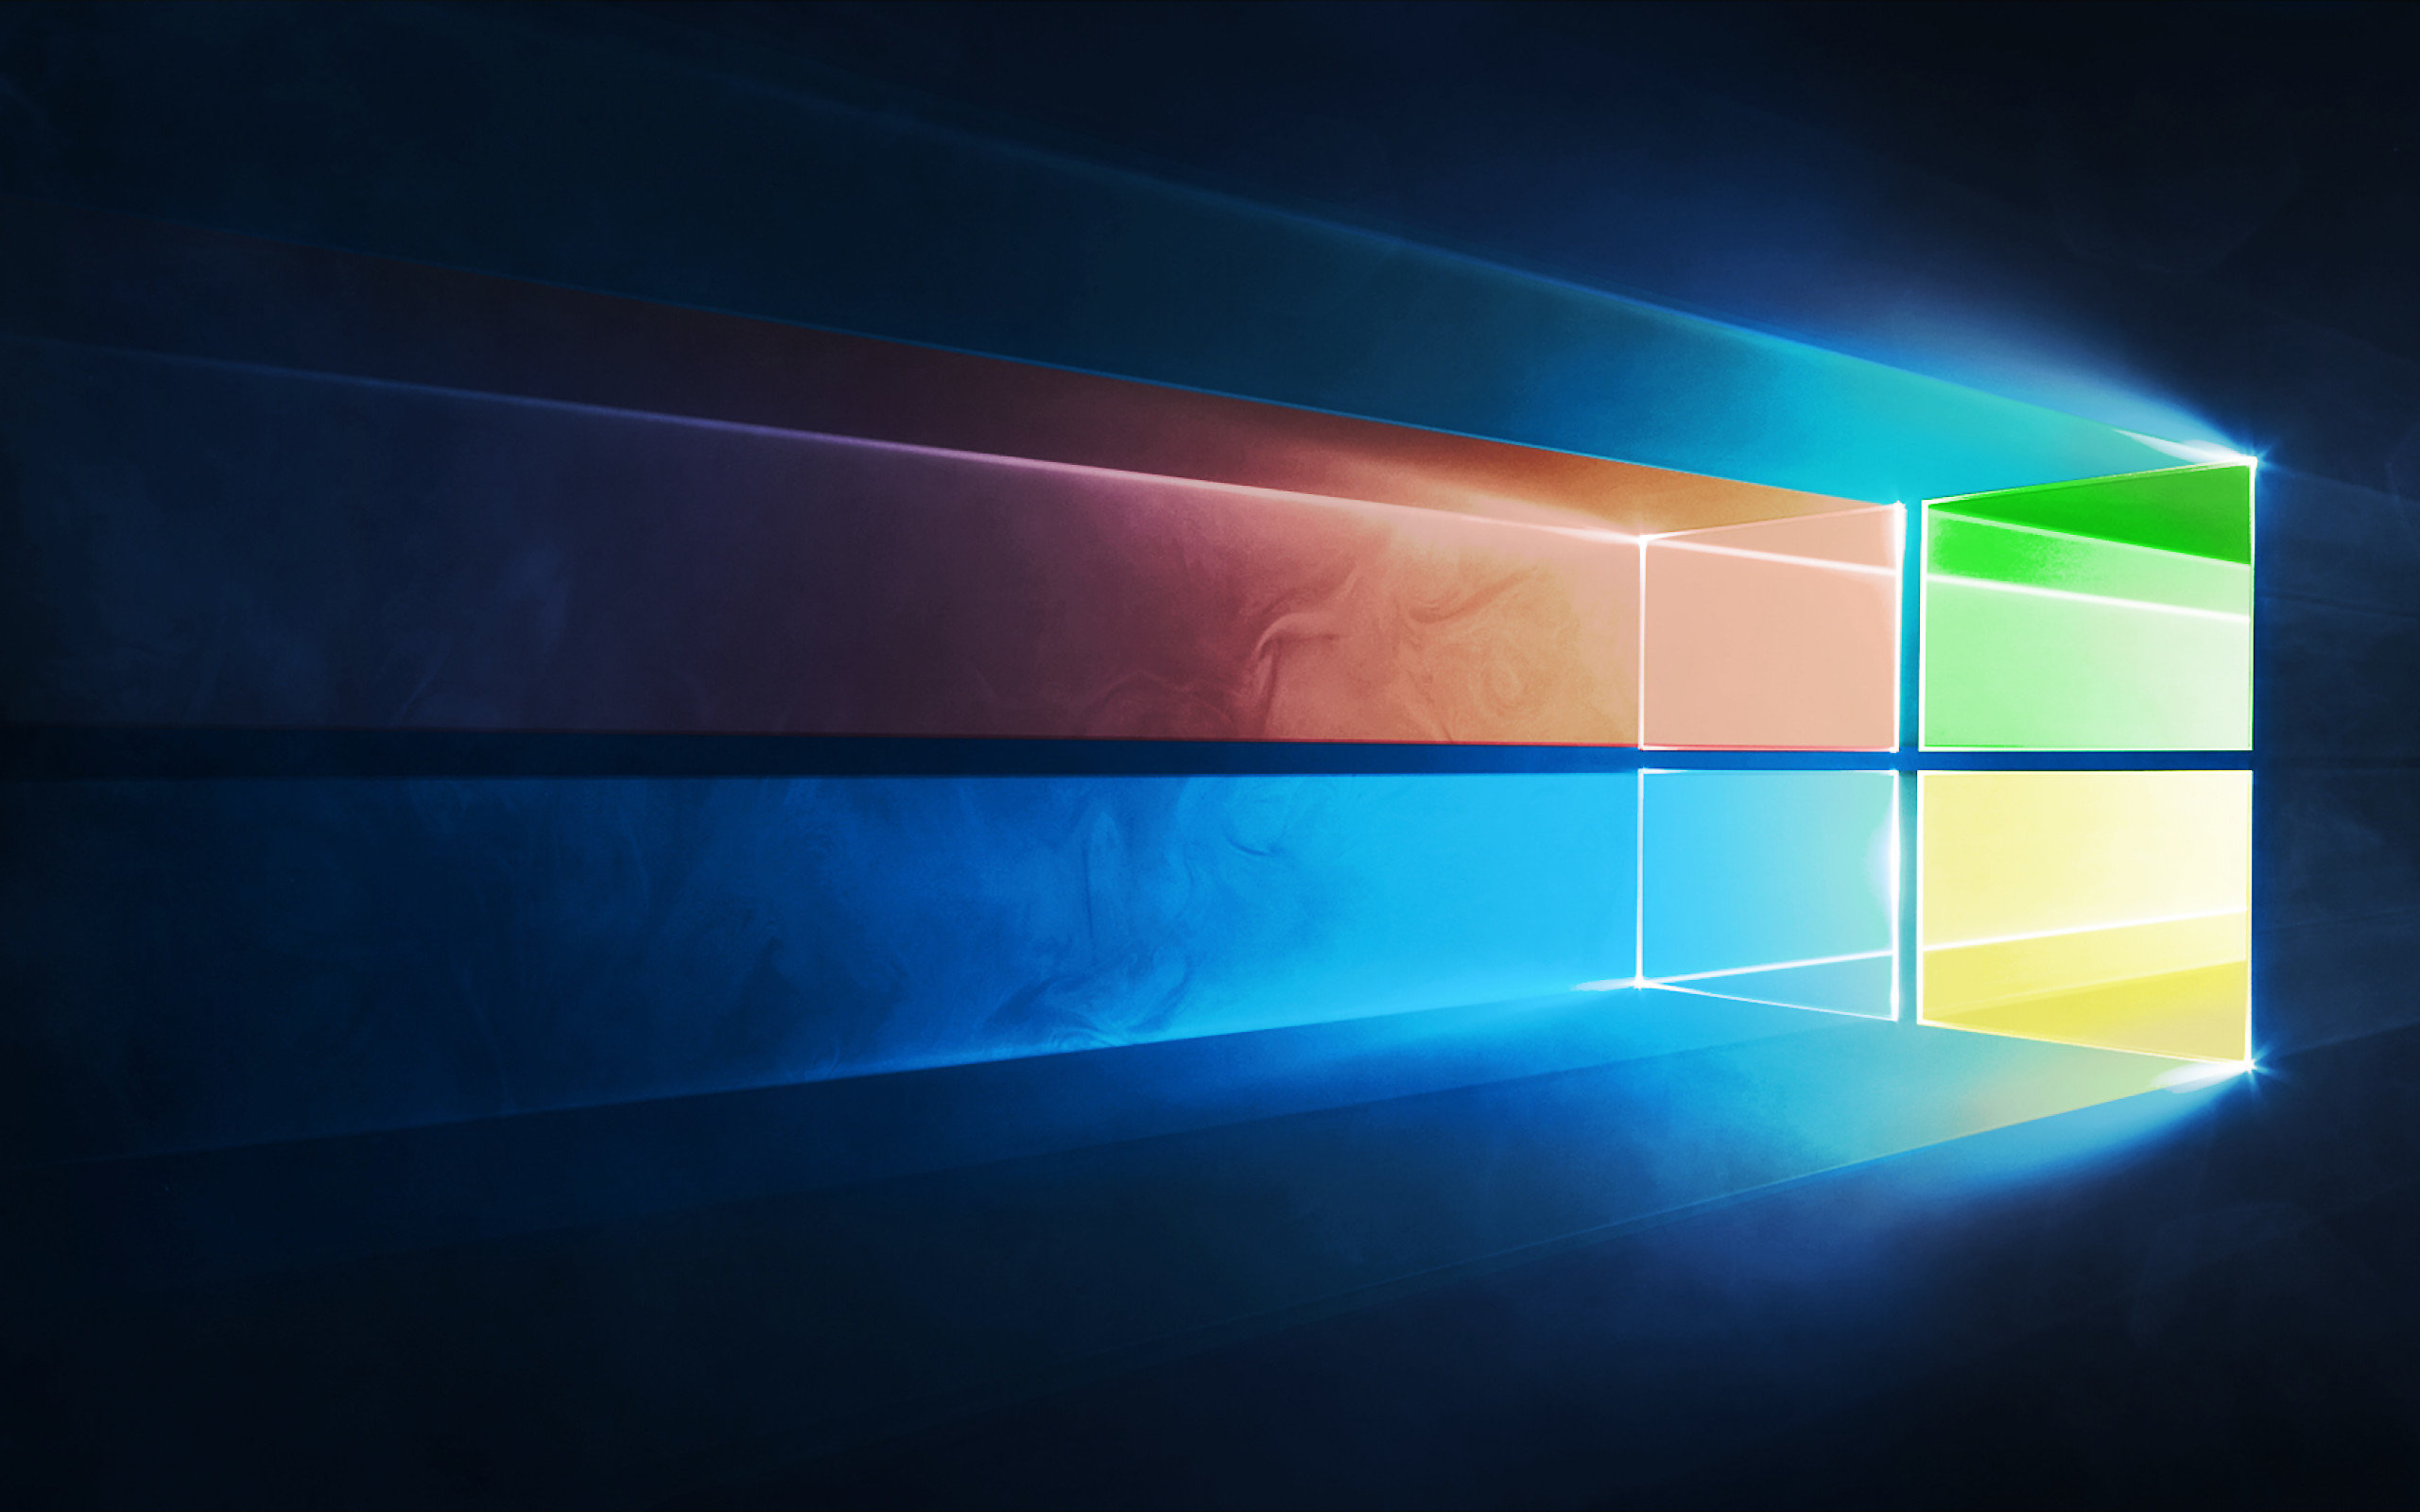 awesome windows 10 free wallpaper id:130311 for hd 2560x1600 computer